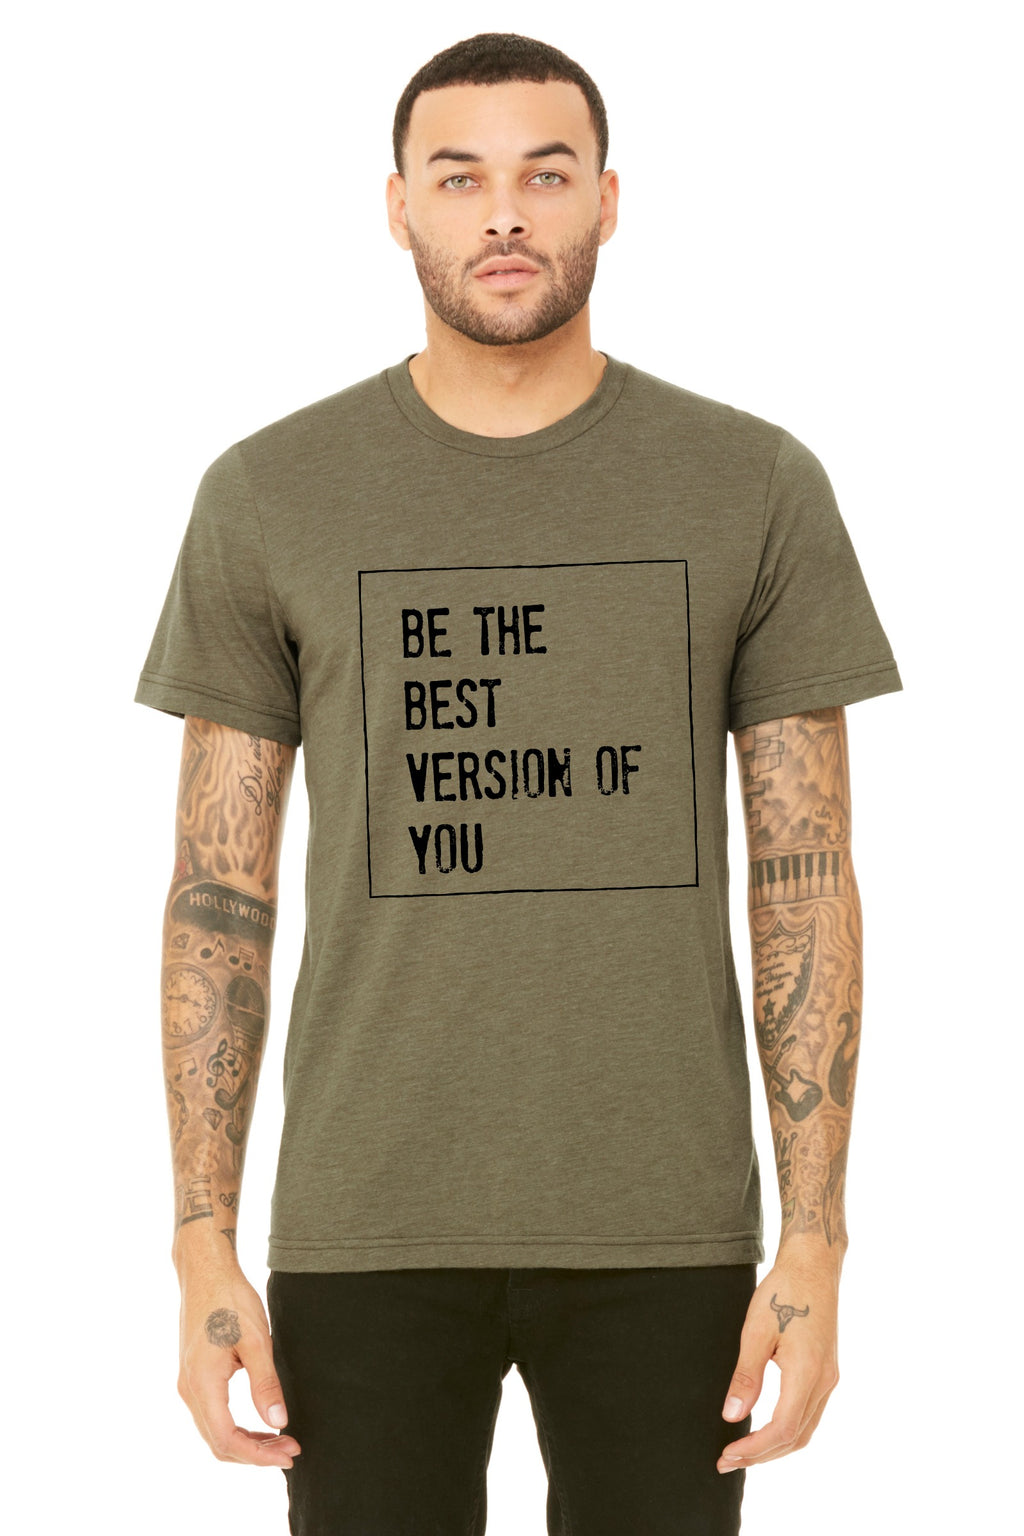 Be the Best Version of You Olive Boyfriend Unisex Tee